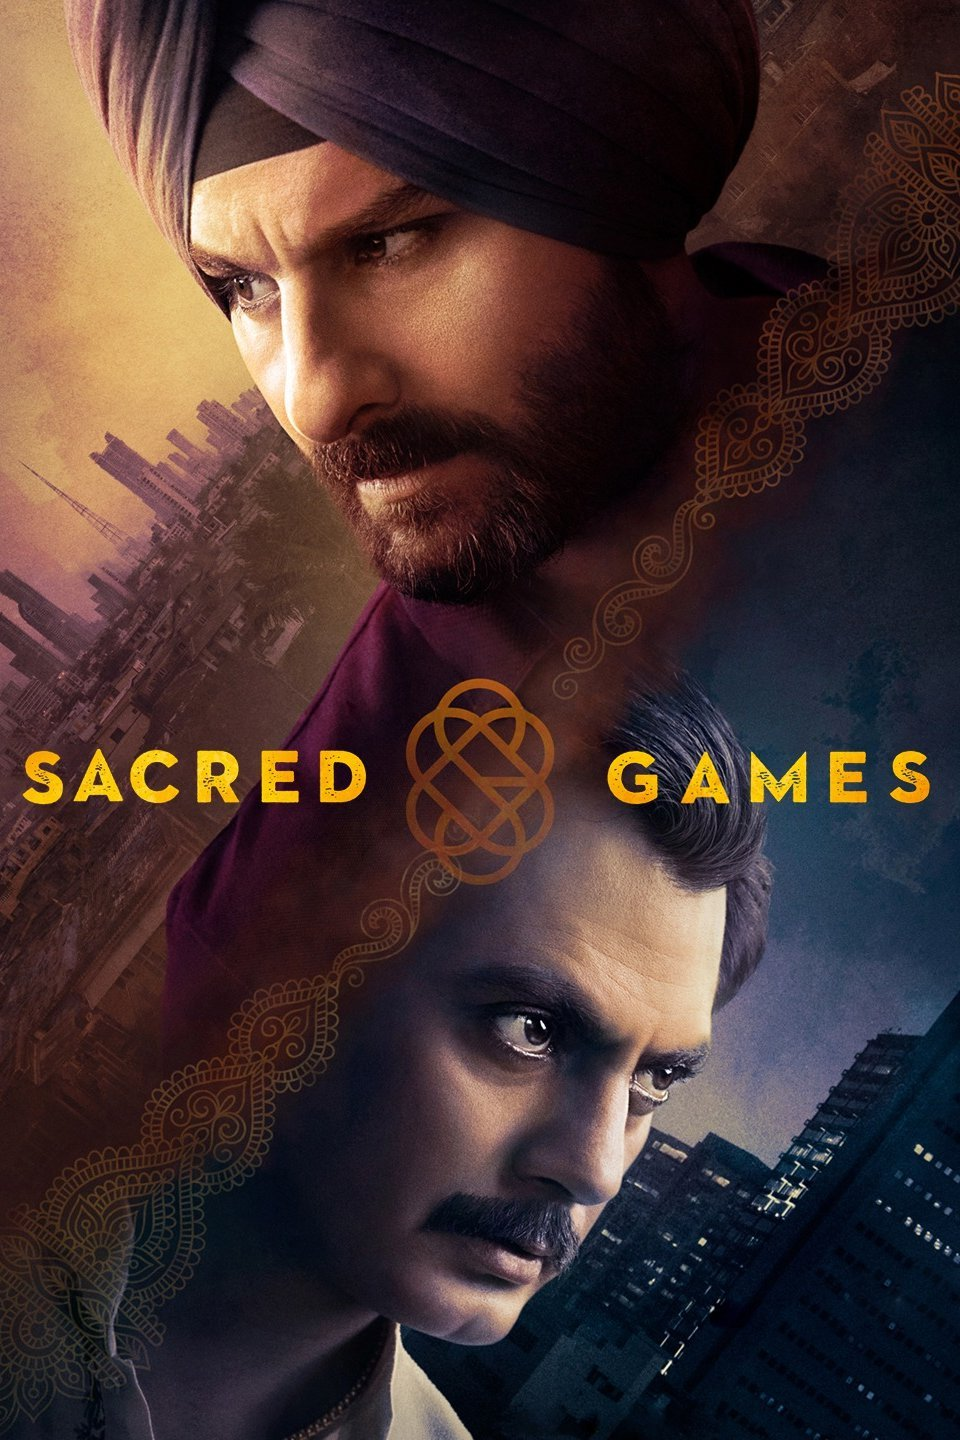 Sacred games season 1 final episode 8 new indian hot web series - 3 3